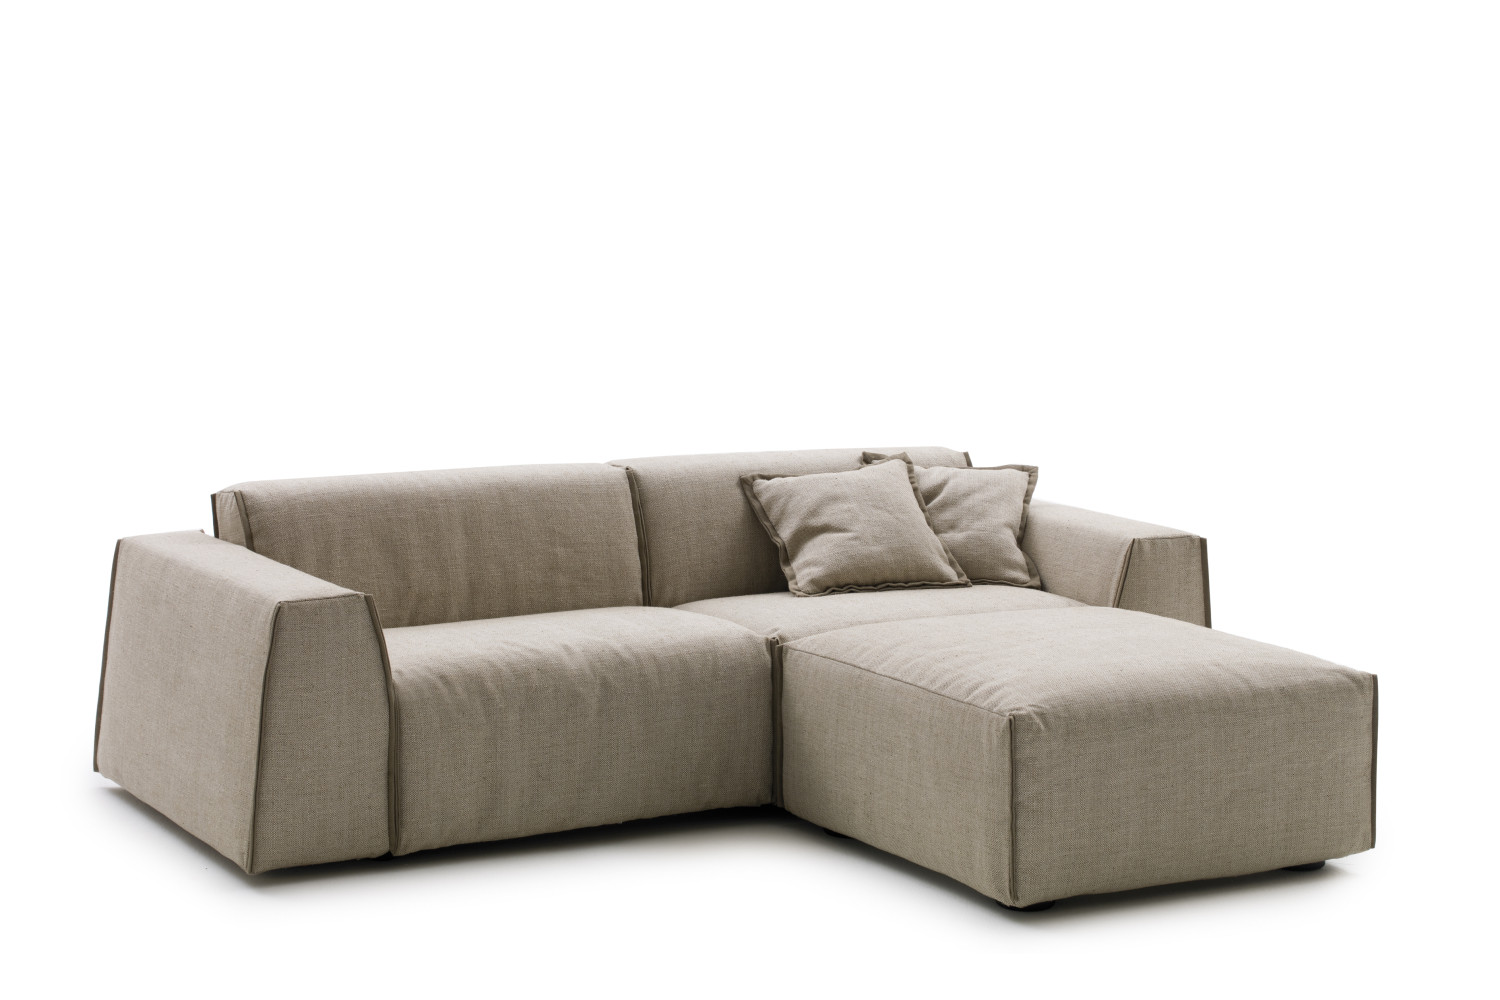 Bed chair backrest - Parker Sofa Bed With Low Backrest Combined With The Ottoman From The Same Collection